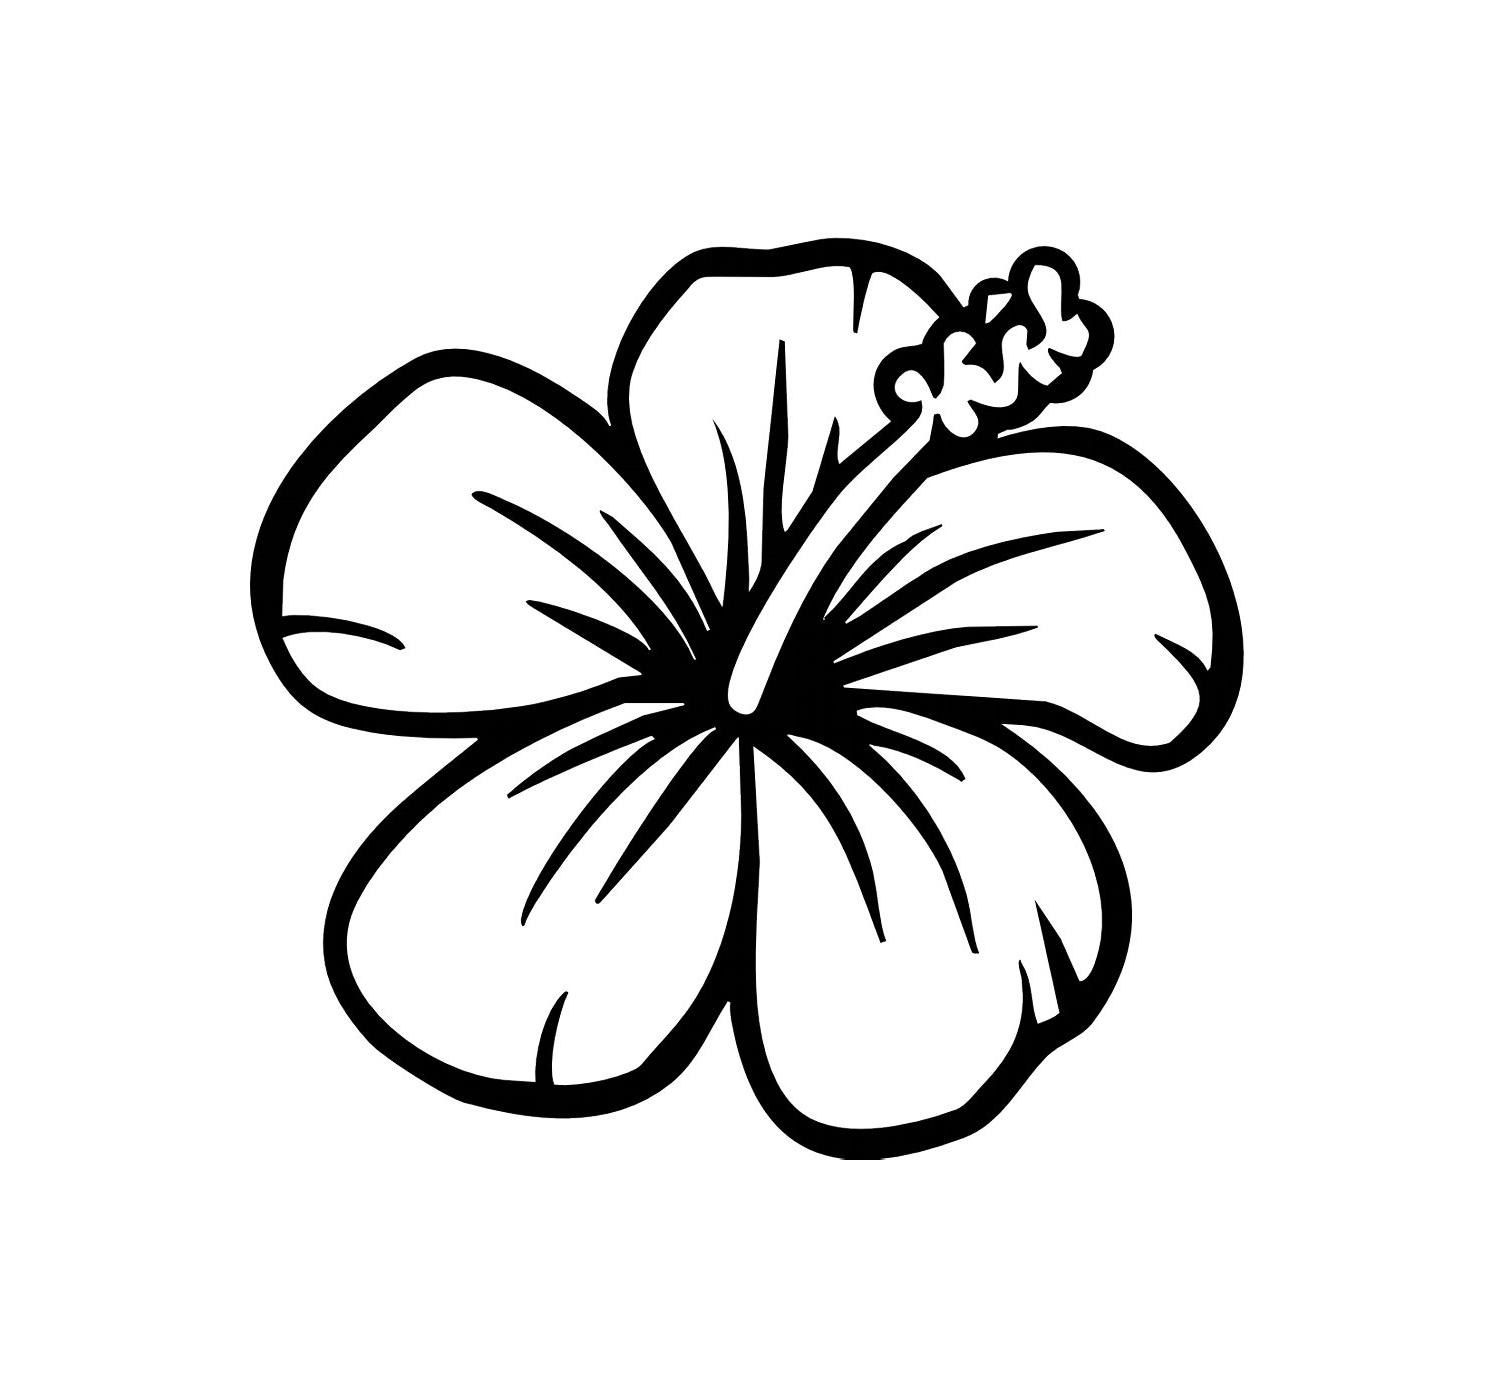 Easy Leaf Outline Image Nextinvitation Templates Hawaiian Flower Drawing Hibiscus Drawing Easy Flower Drawings